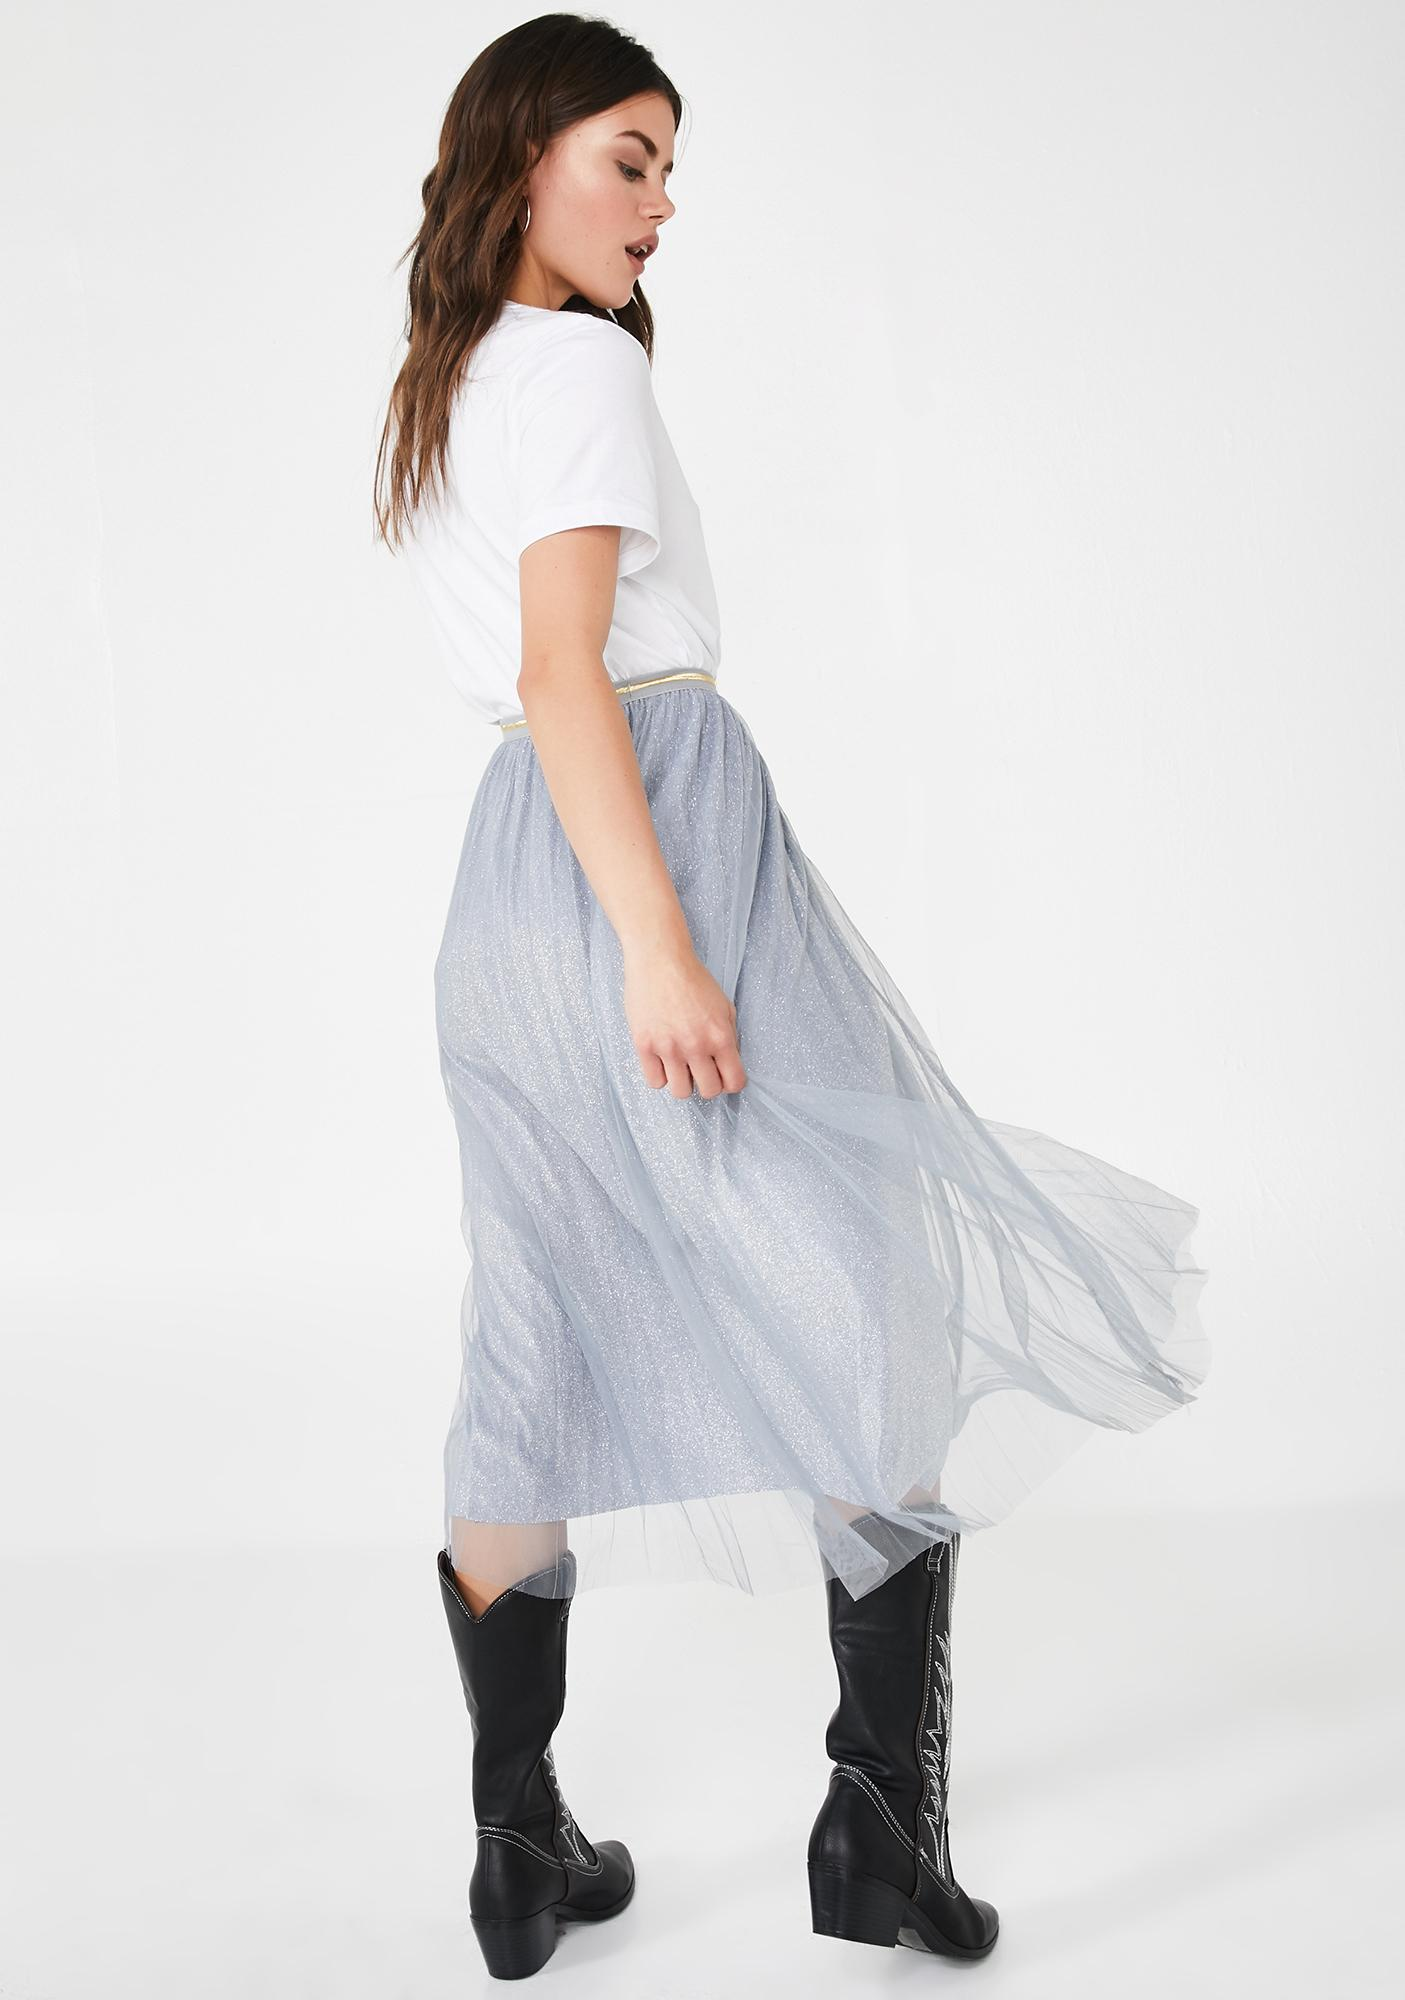 Molly Bracken Tulle Skirt